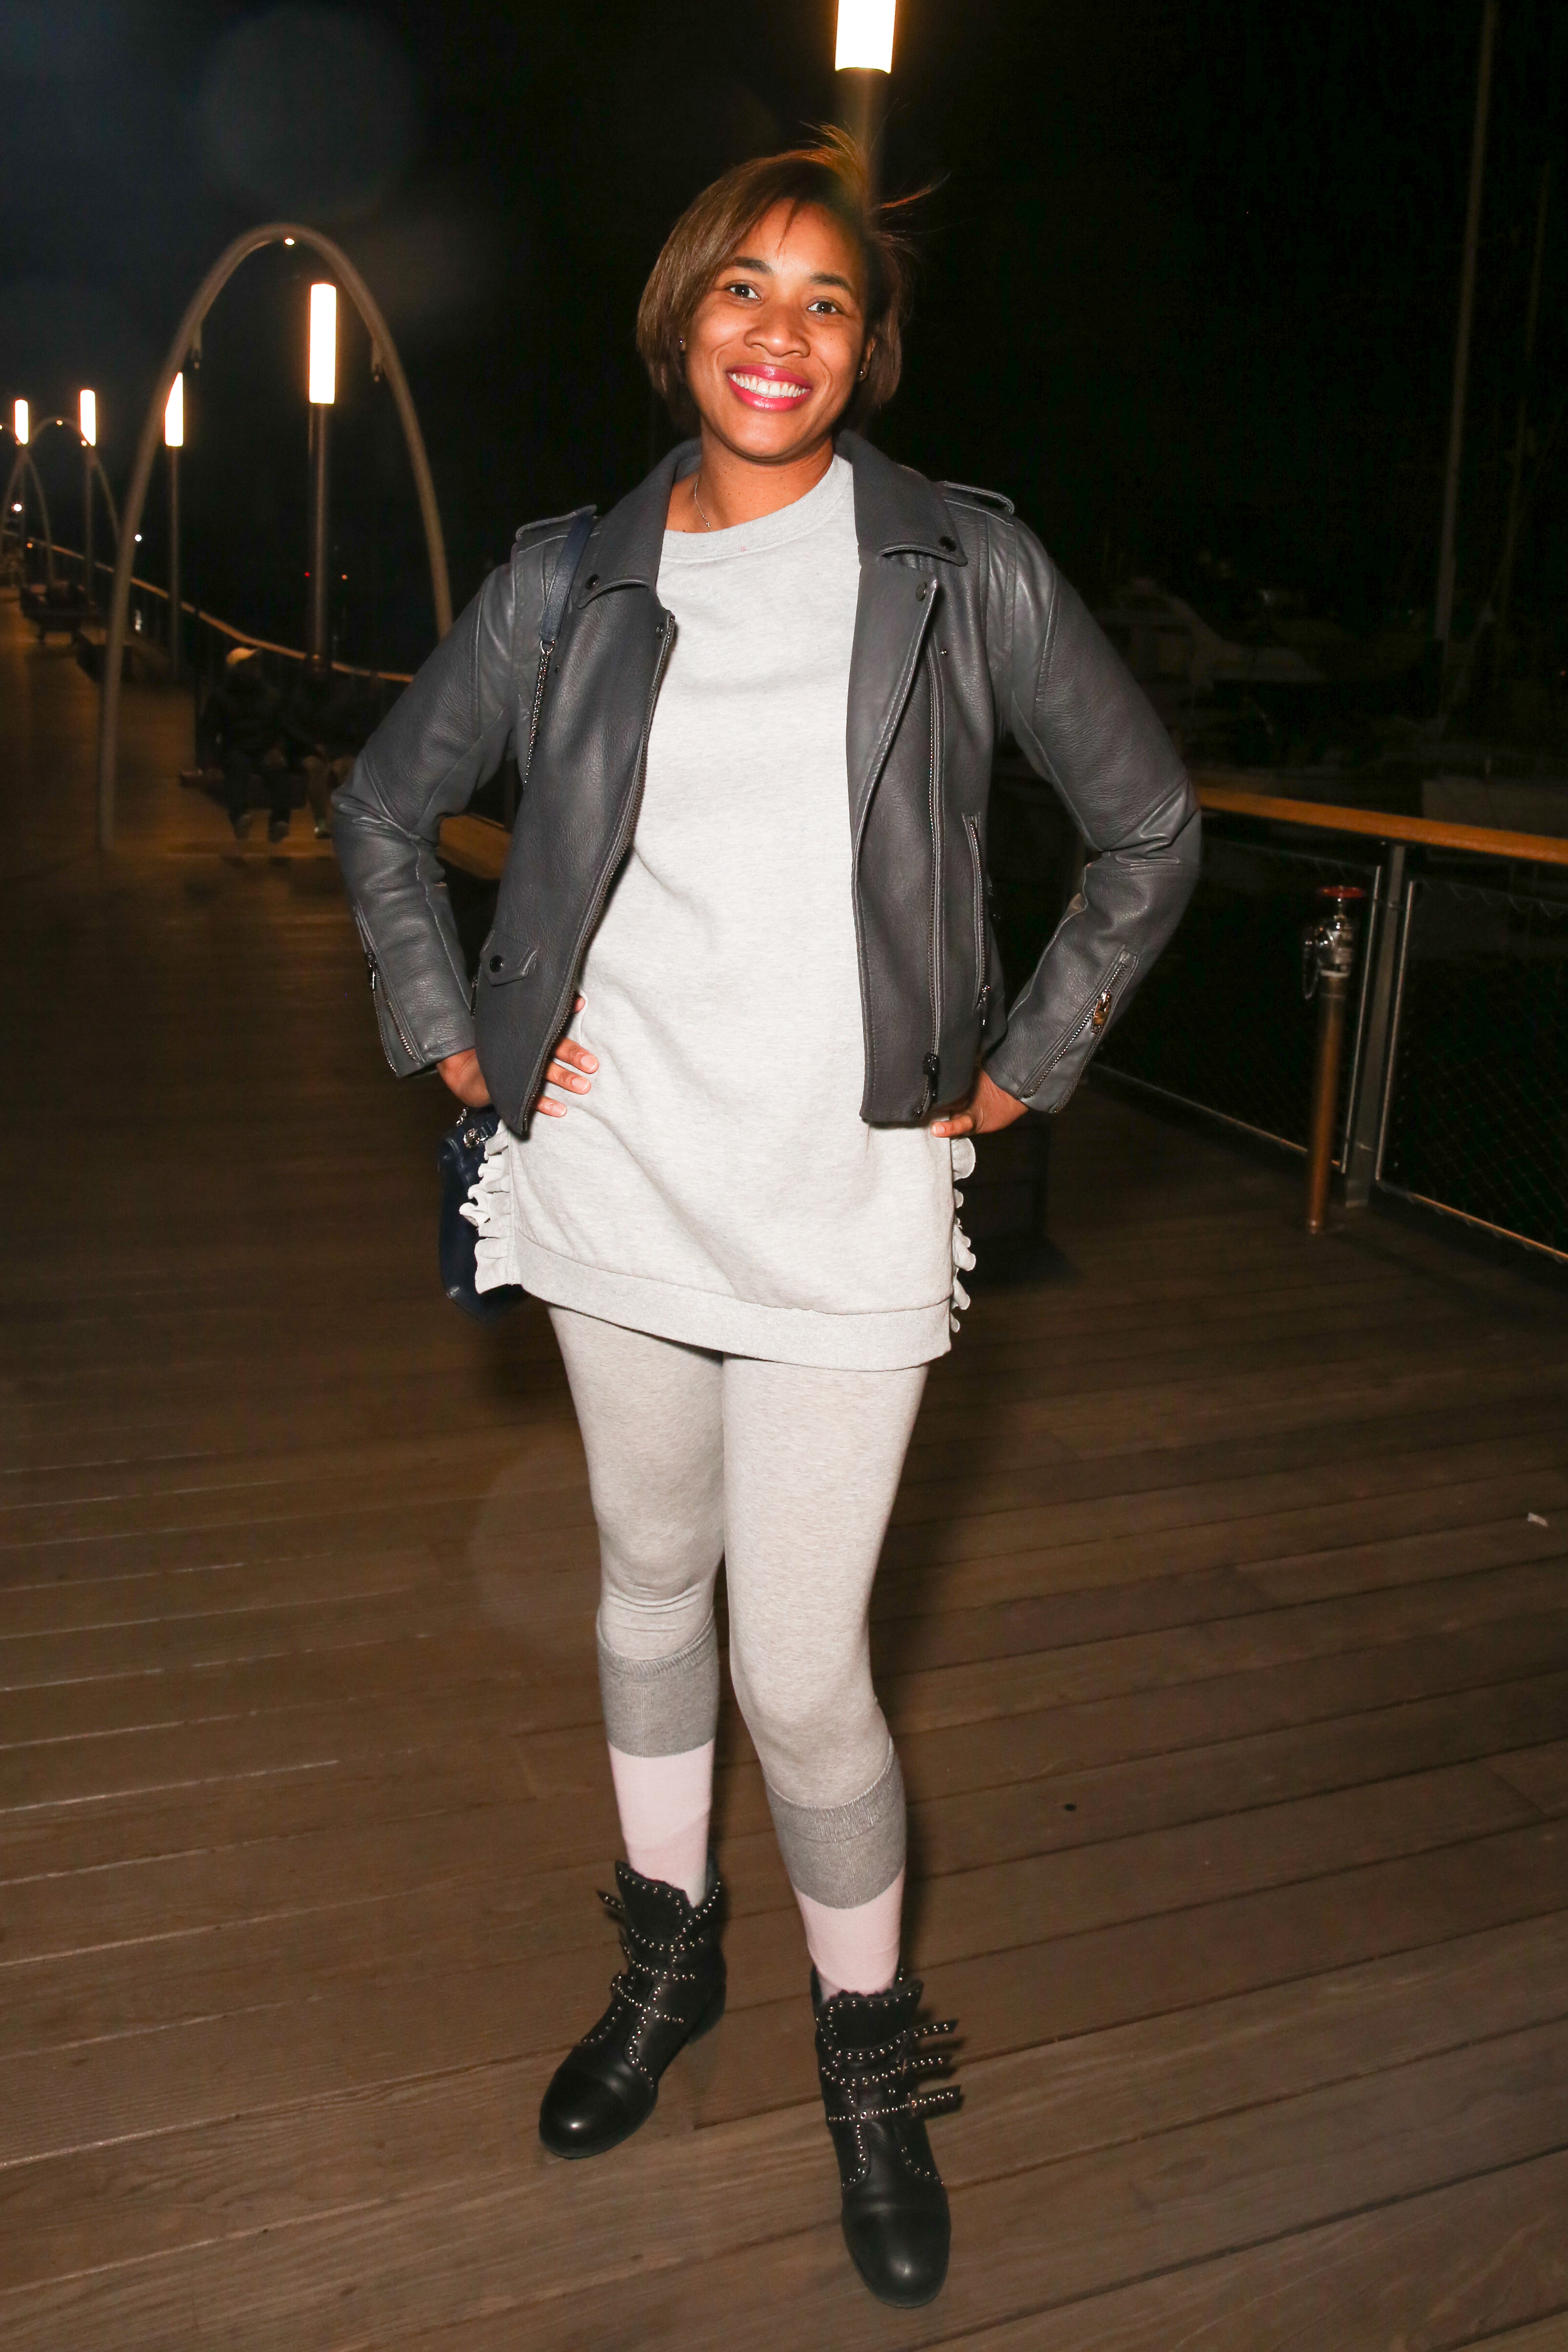 Sherise Perry's grey leggings are ultra street-wear.{&nbsp;}(Amanda Andrade-Rhoades/DC Refined)<p></p>